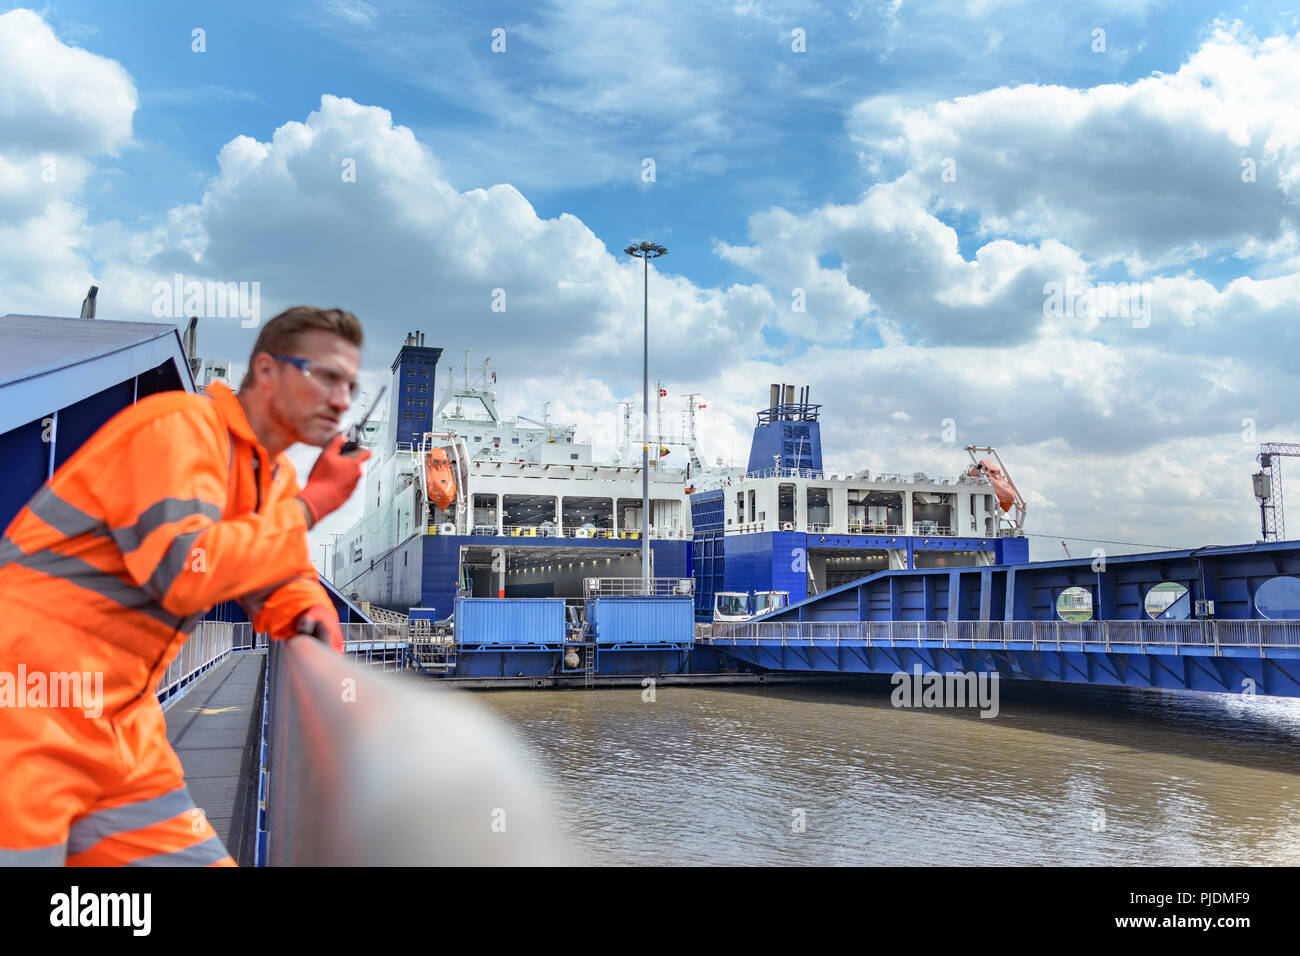 Ship's worker using walkie talkie to communicate with loading ferry ships in port in background - Stock Image